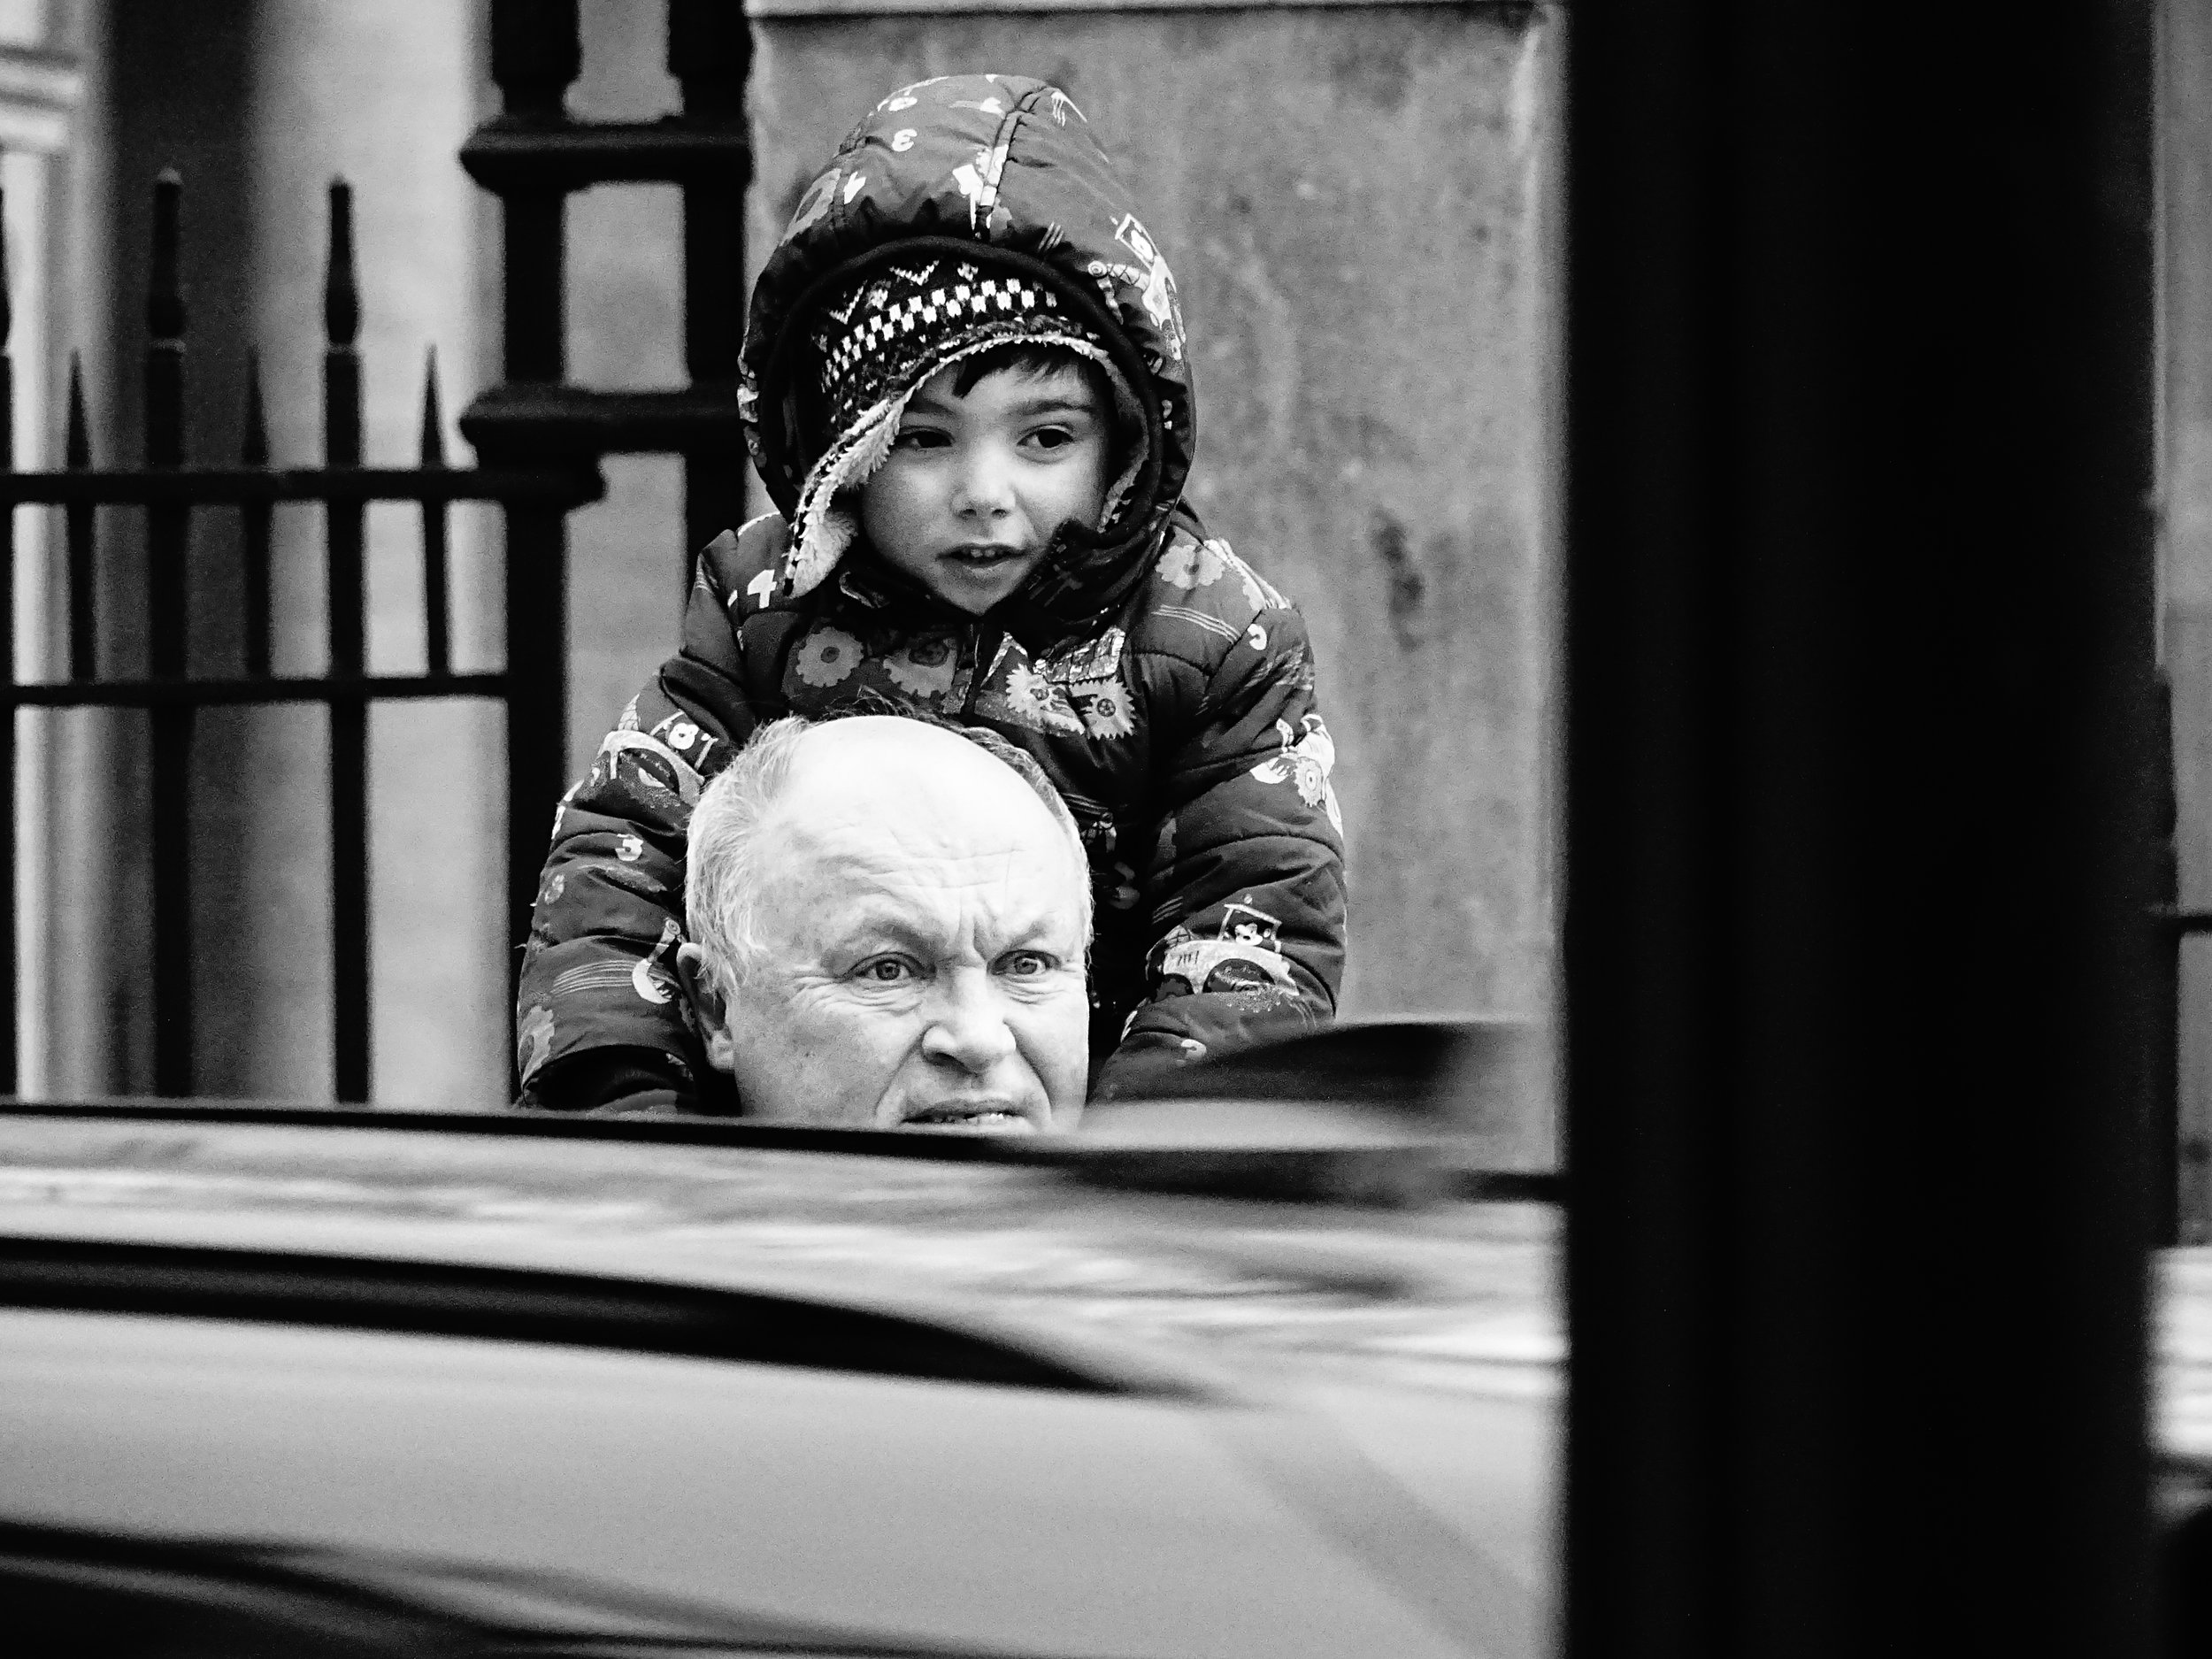 On His Grandfather's Shoulders, London 2018